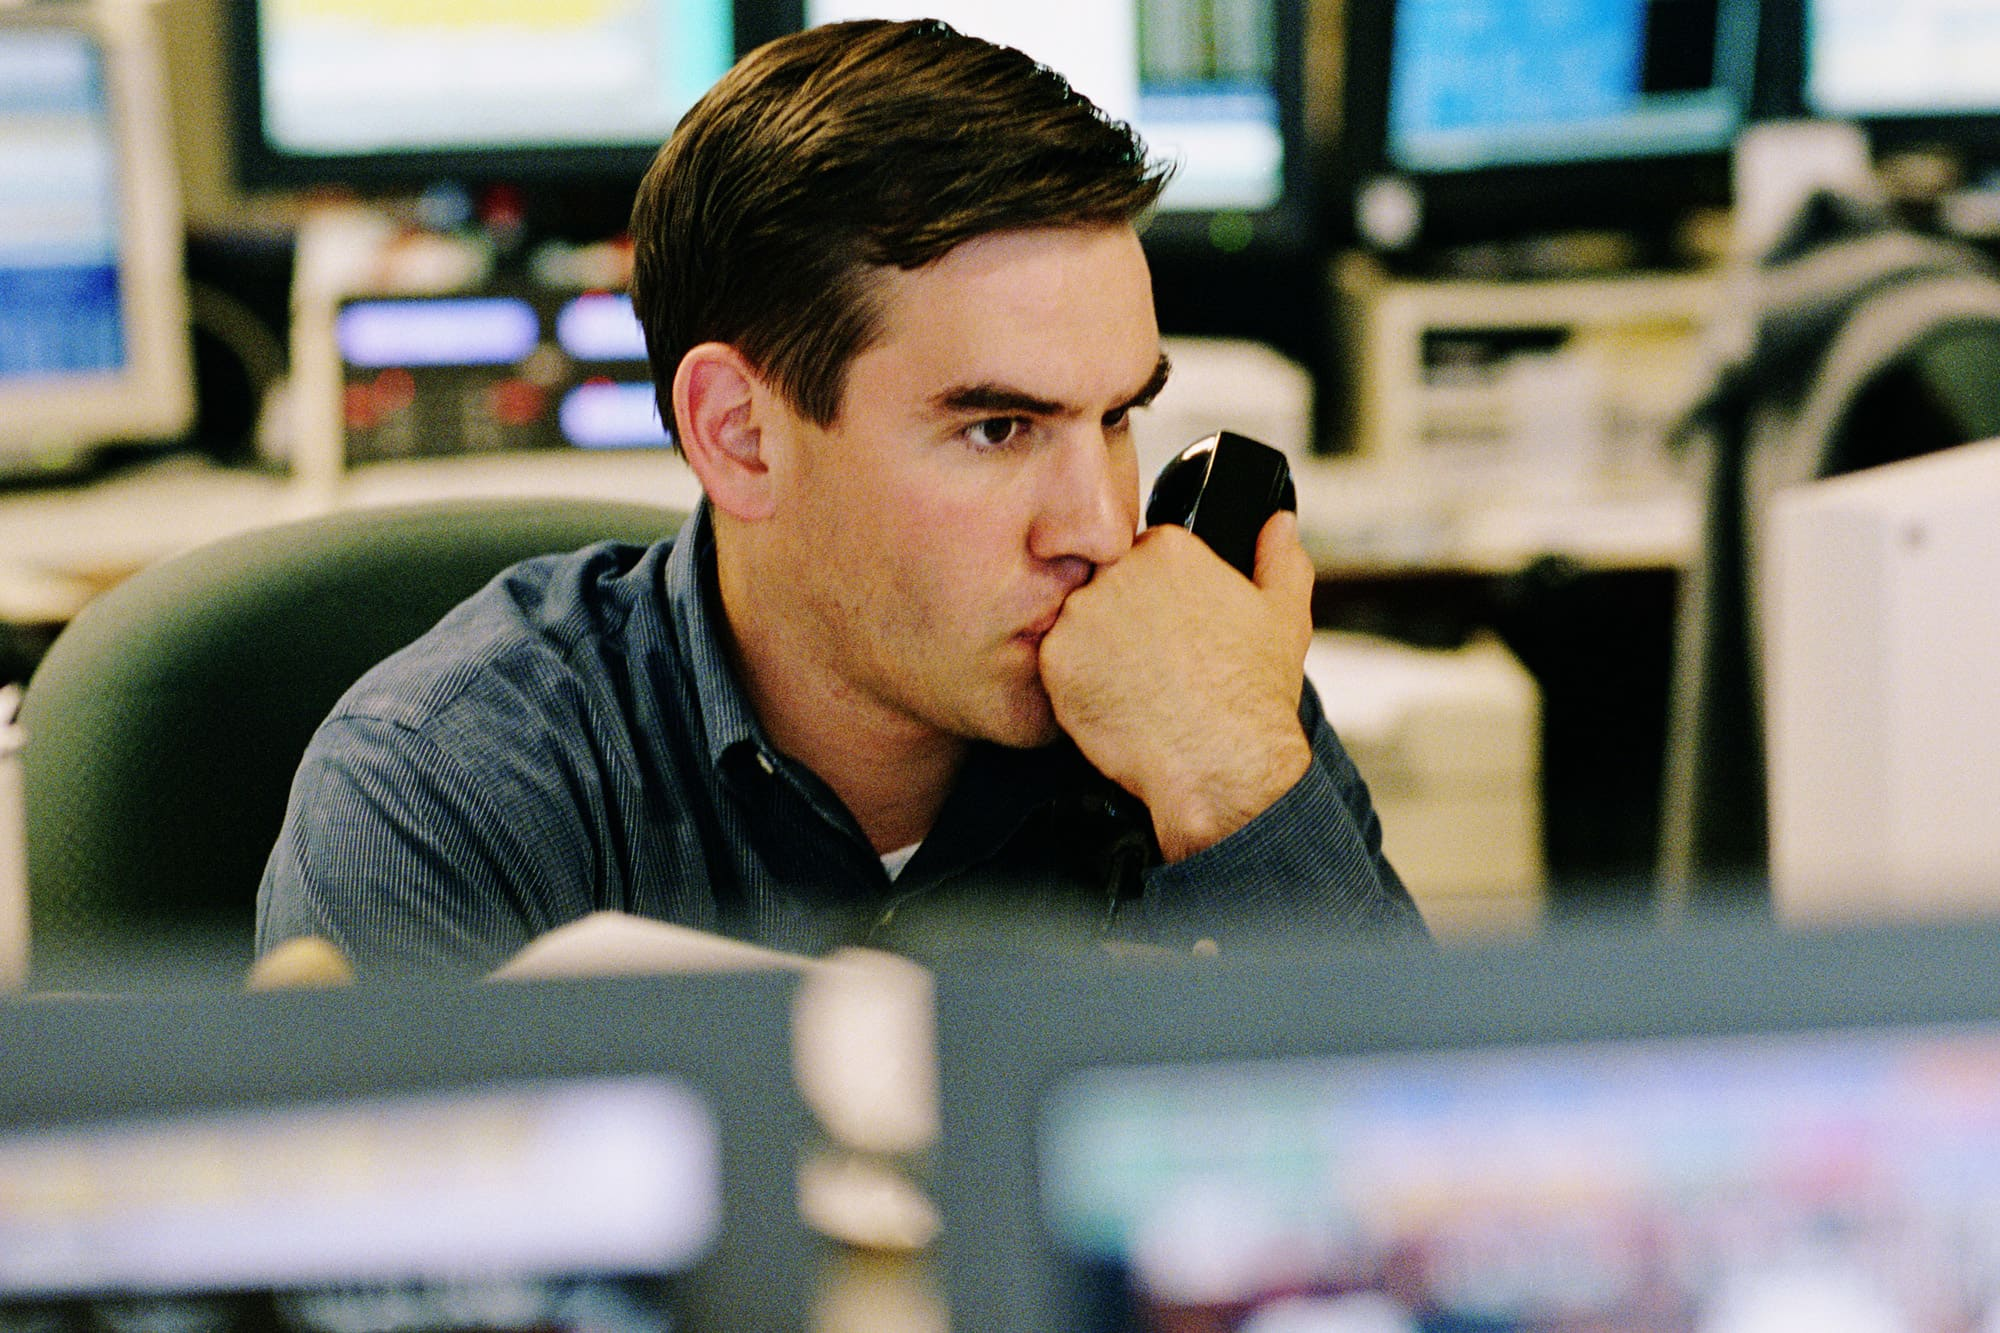 Op-ed: Here's how to stay in control and avoid emotional investing decisions